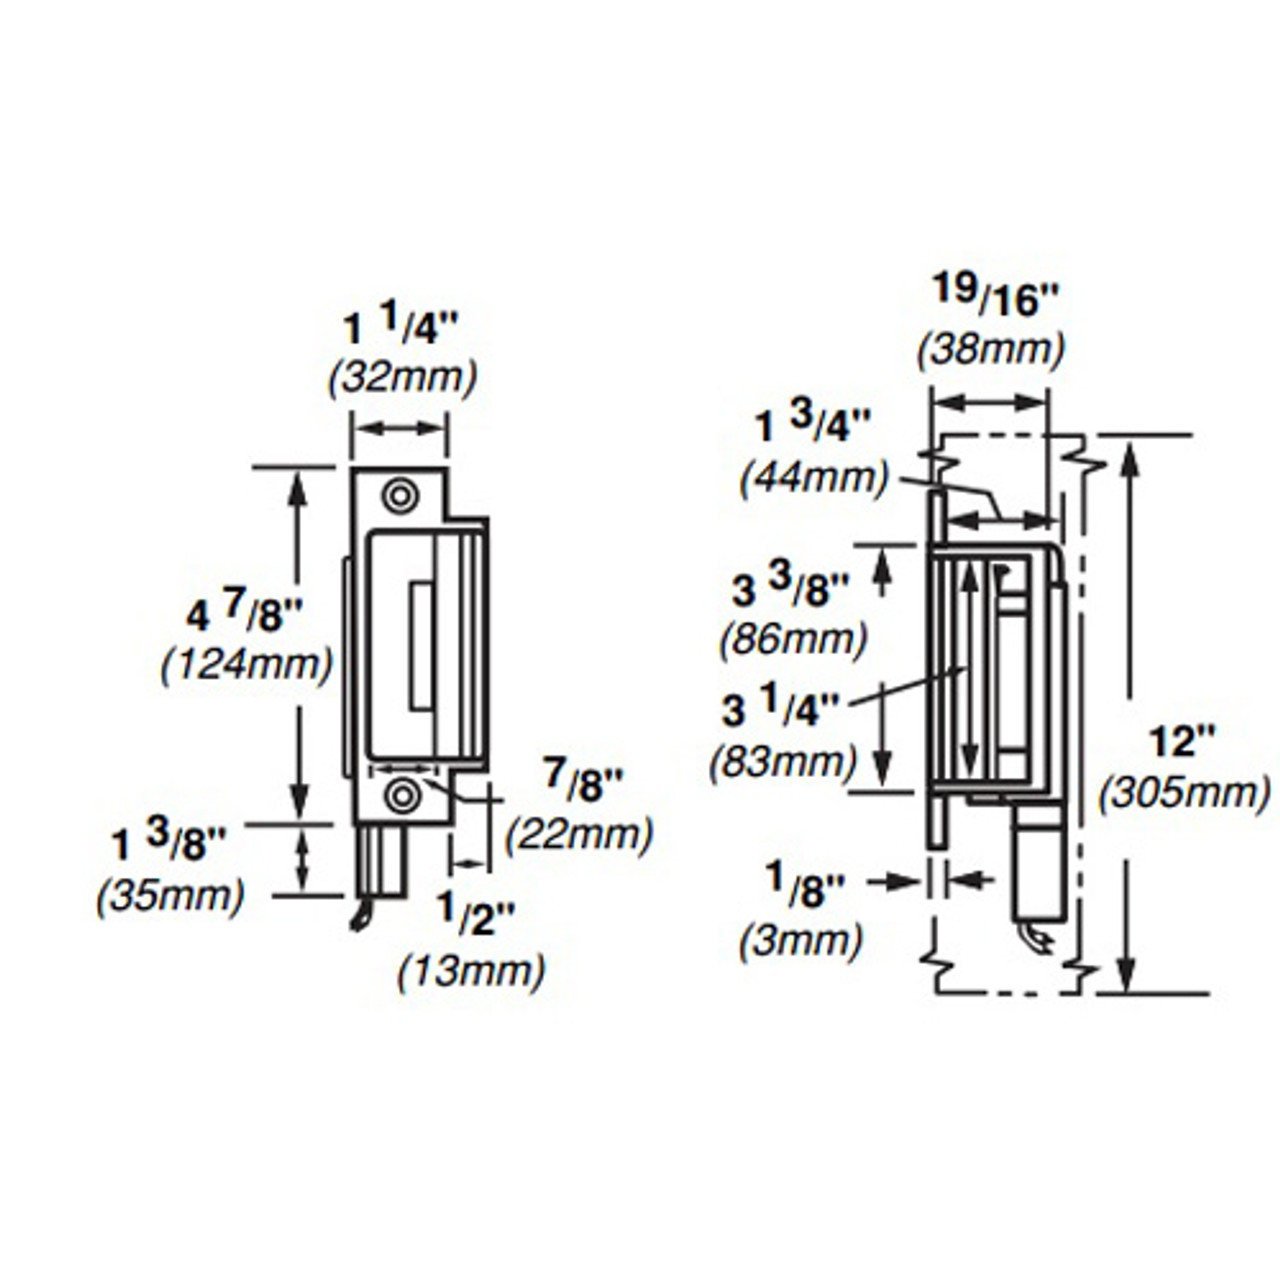 6210-12VDC-US32 Von Duprin Electric Strike for Mortise Locks in Bright Stainless Steel Finish